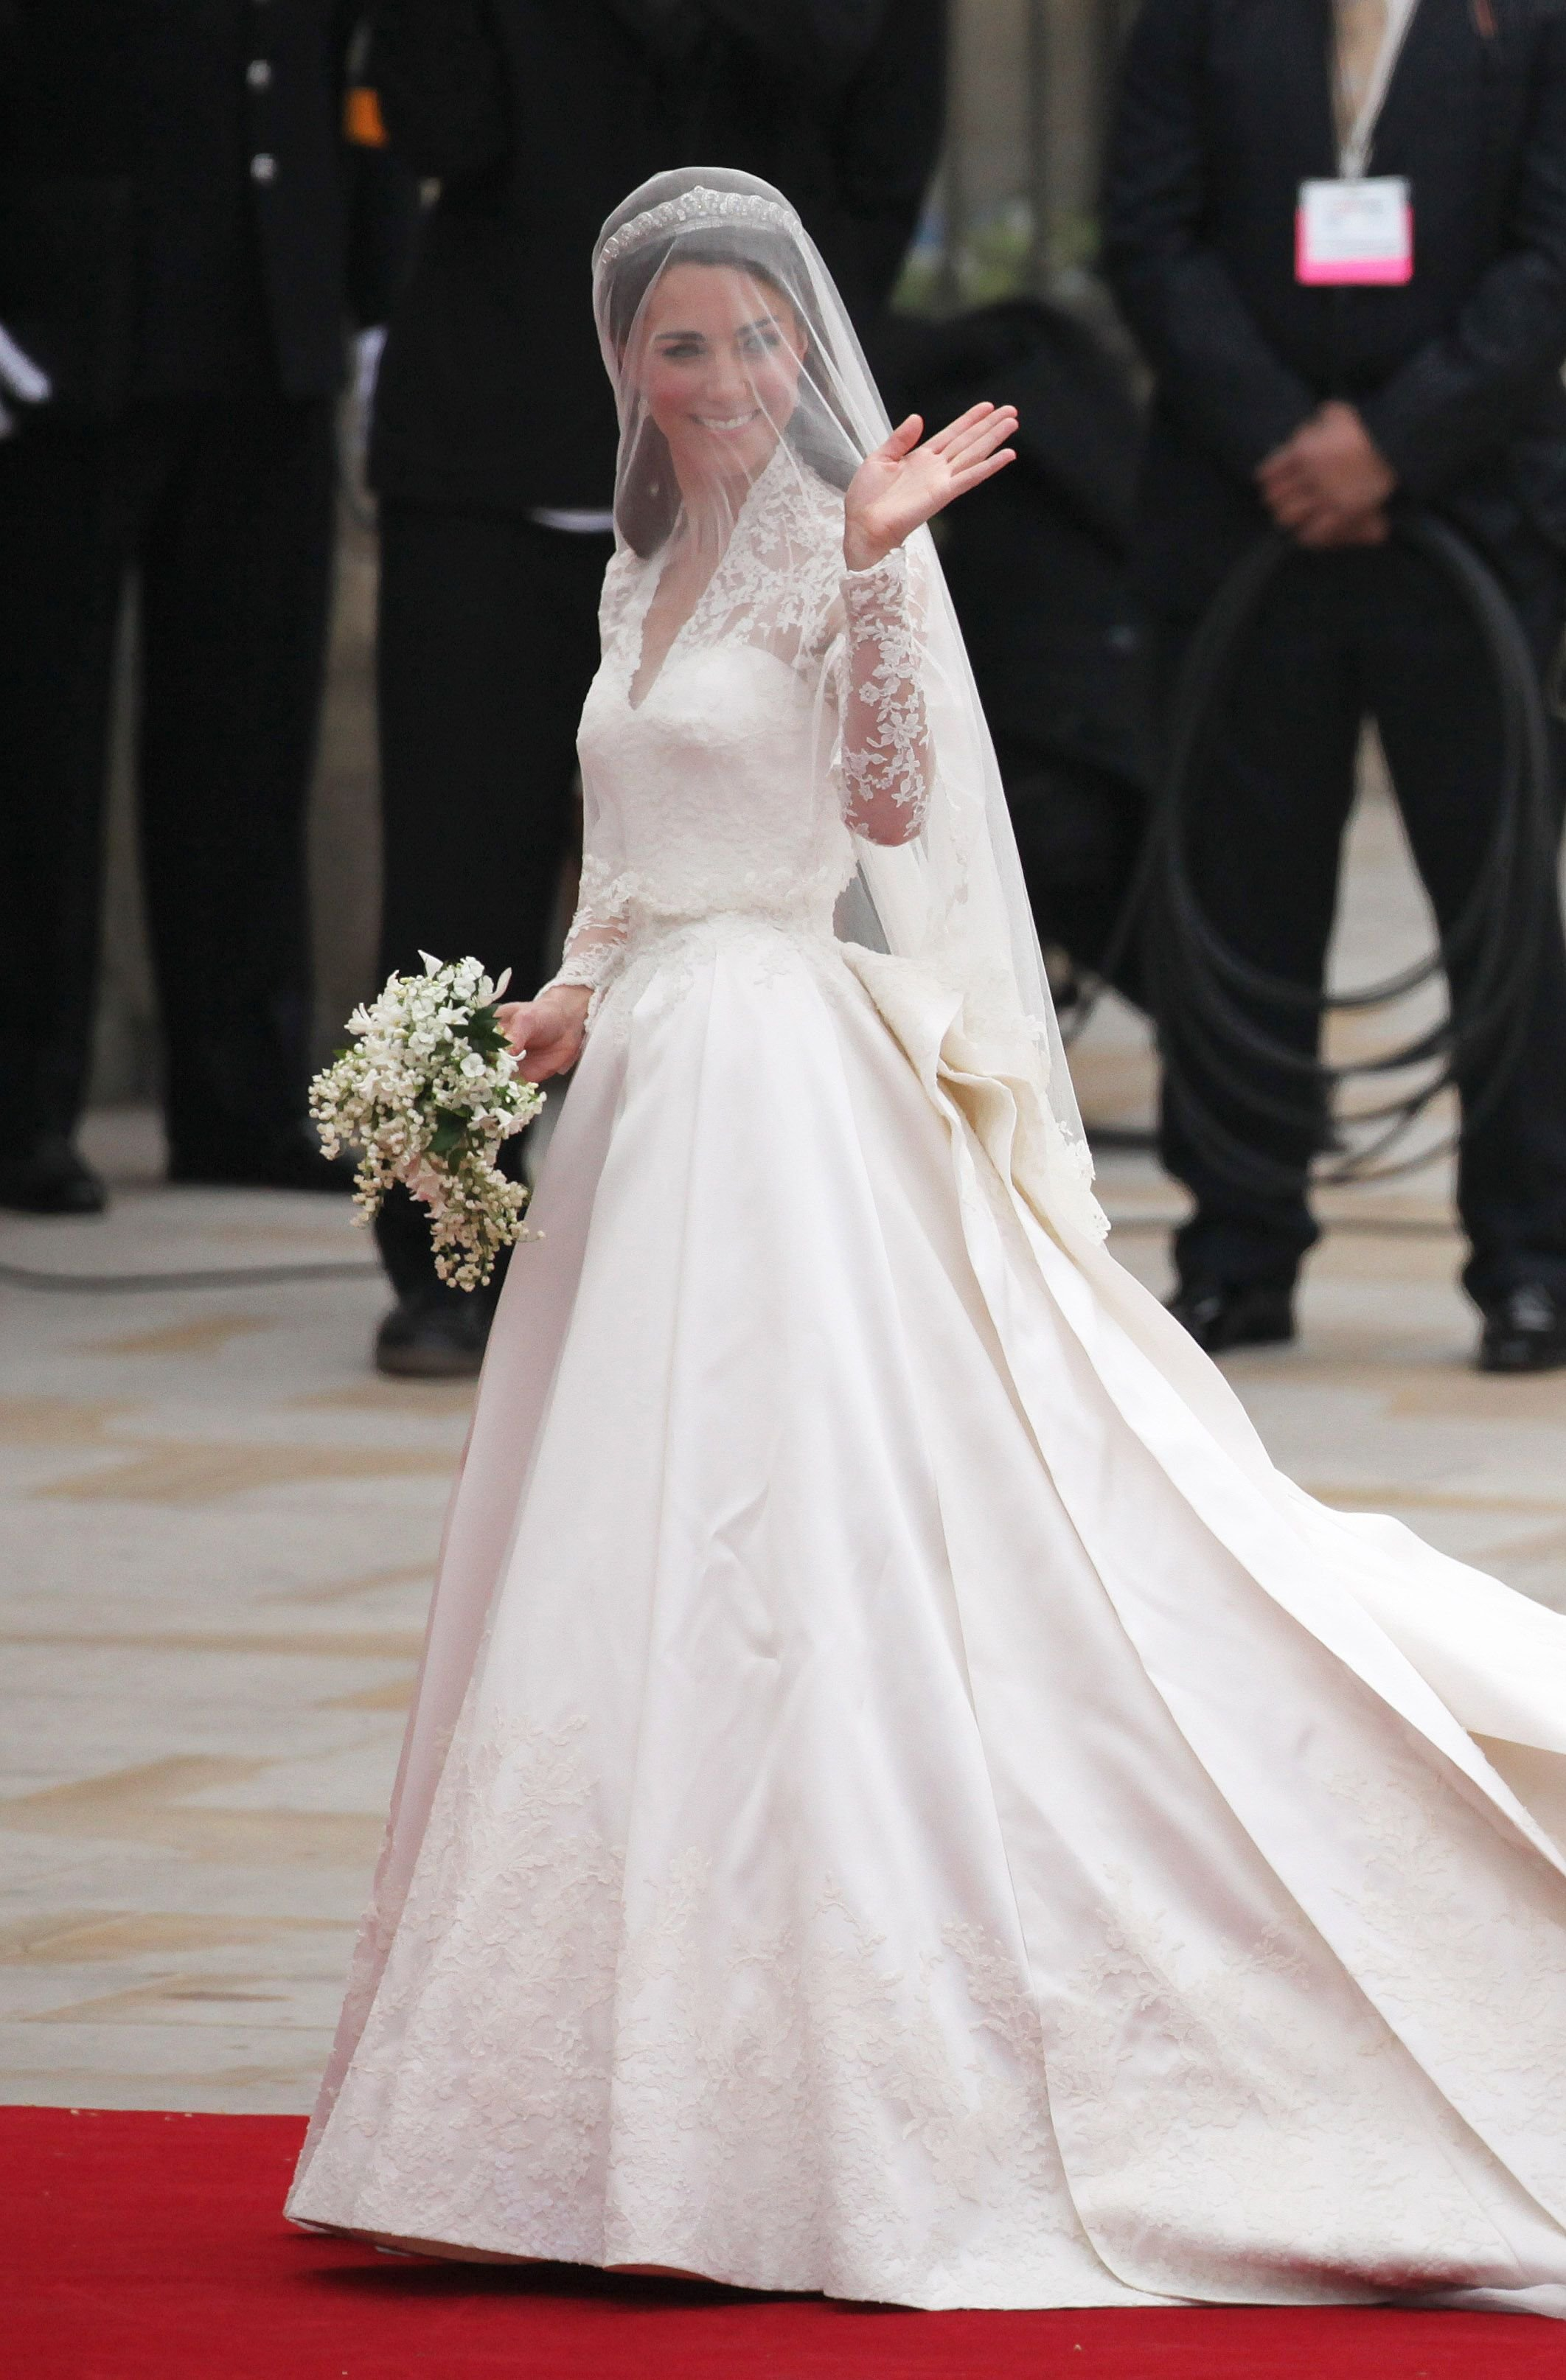 Catherine Middleton waves to the crowds as she arrives at Westminster Abbey on April 29, 2011, in London, England | Photo: Paul Rogers - WPA Pool/Getty Images